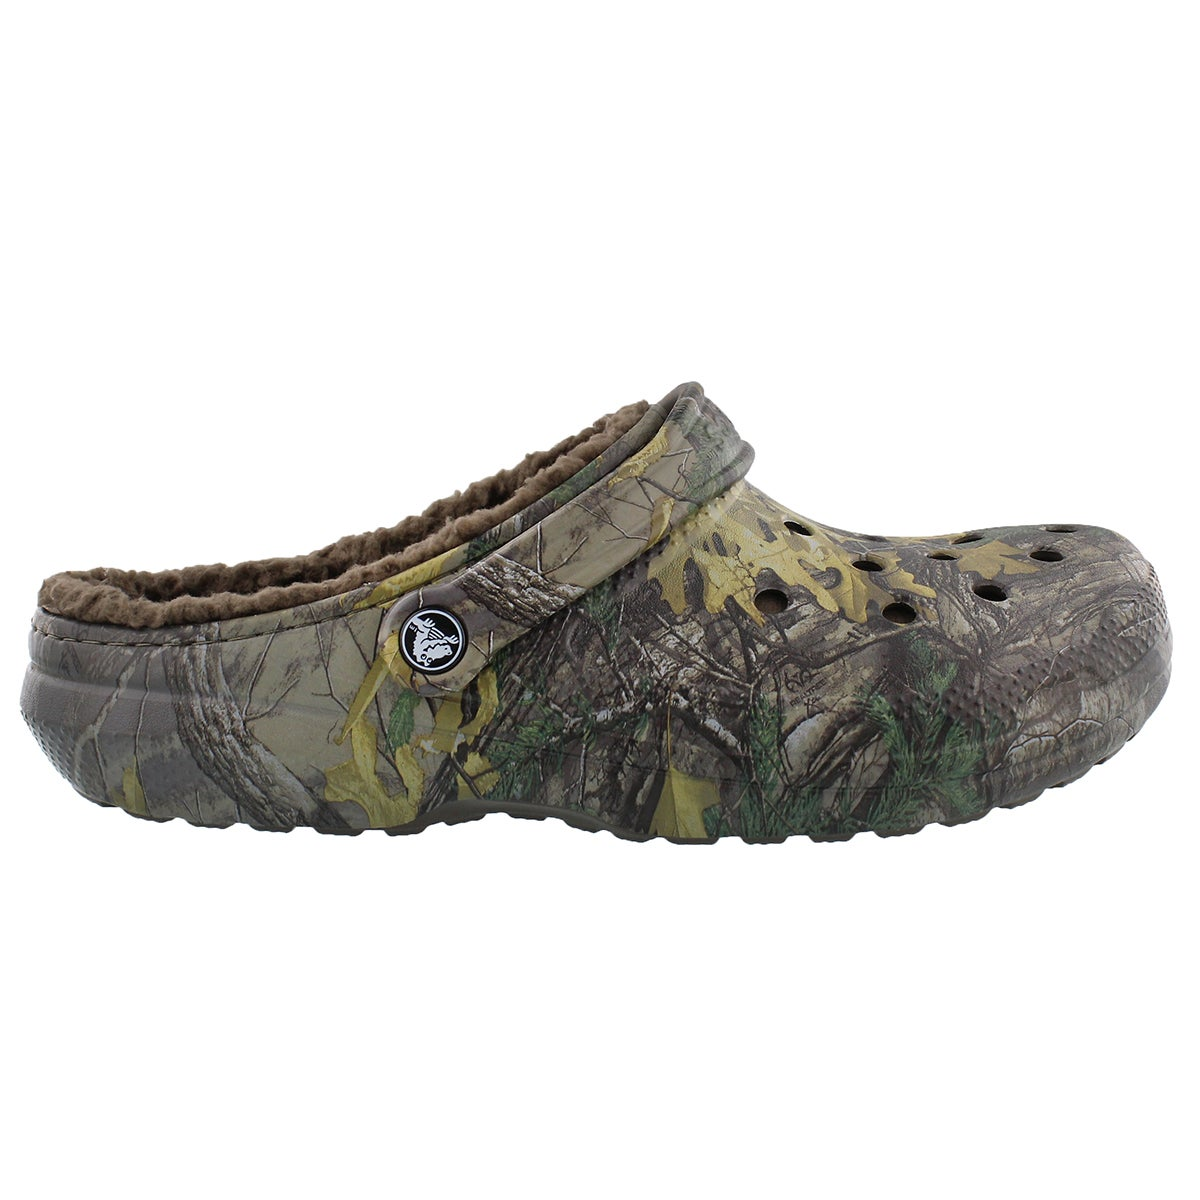 Mns Classic Lined realtree comfort clog